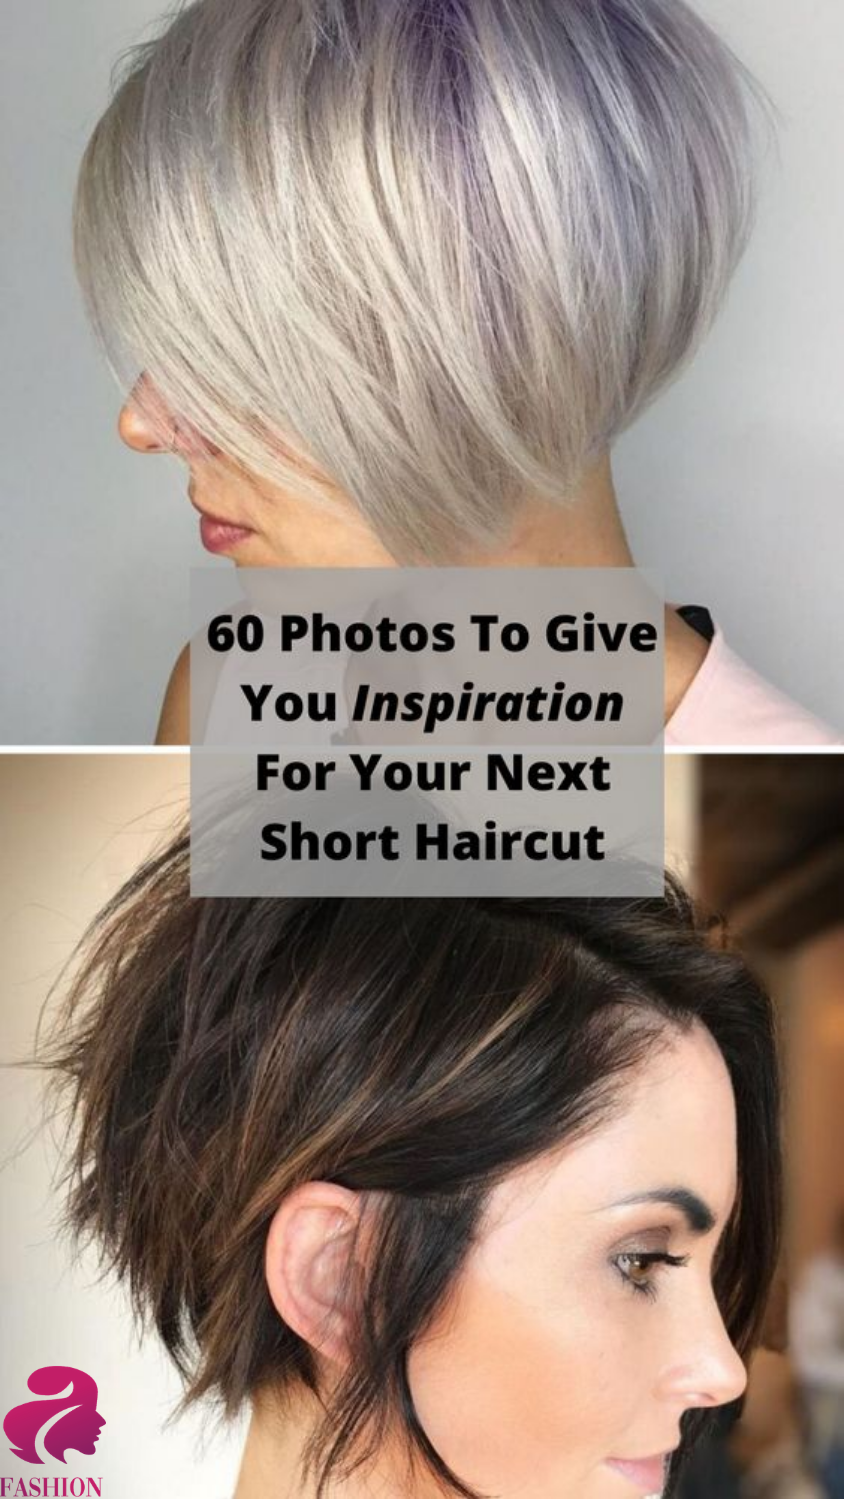 60 Photos To Give You Inspiration For Your Next Short Haircut In 2020 Fashion And Beauty Tips Fashion Beauty Haircut Inspiration